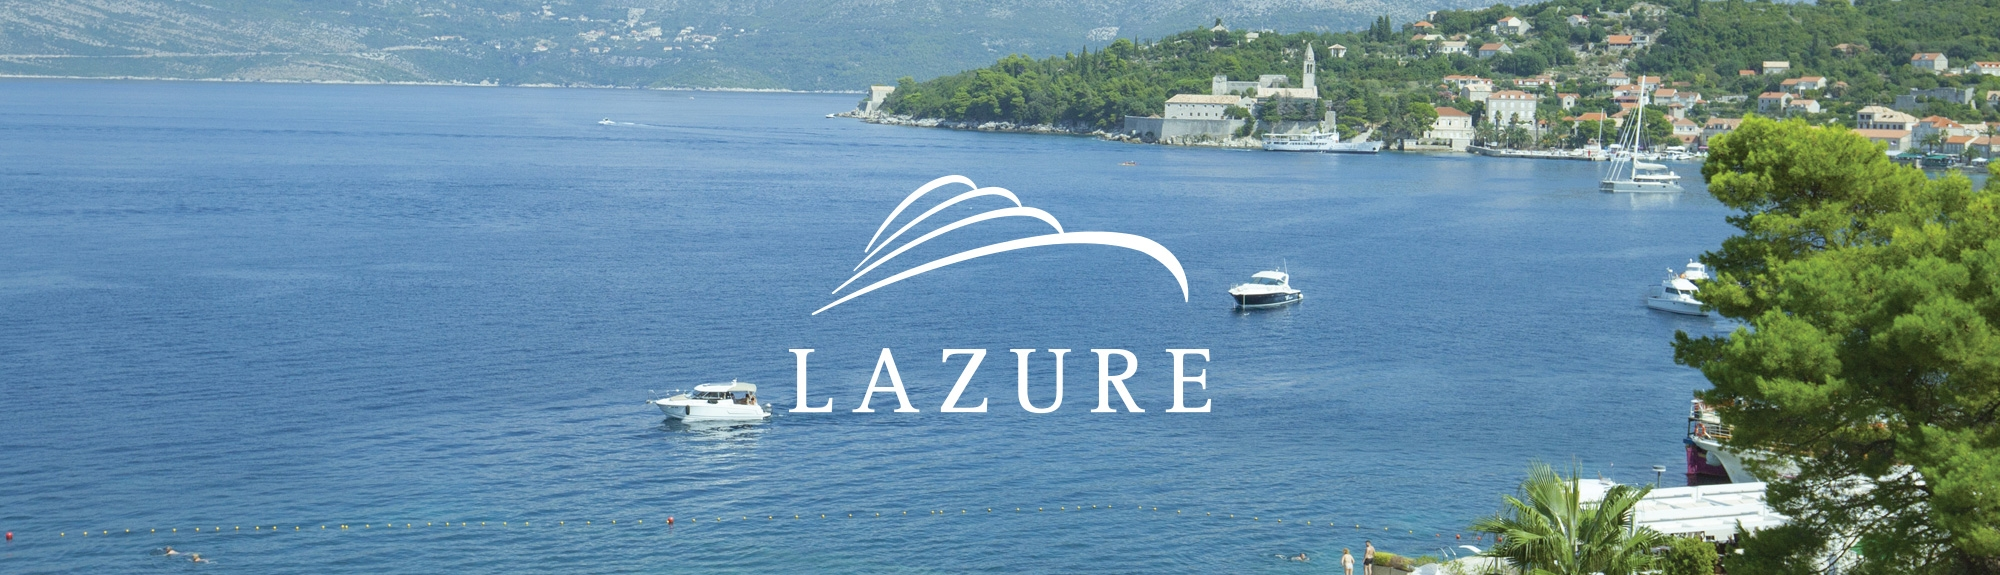 Lafodia Hotel - Sea Resort - Dubrovnik - Croatia